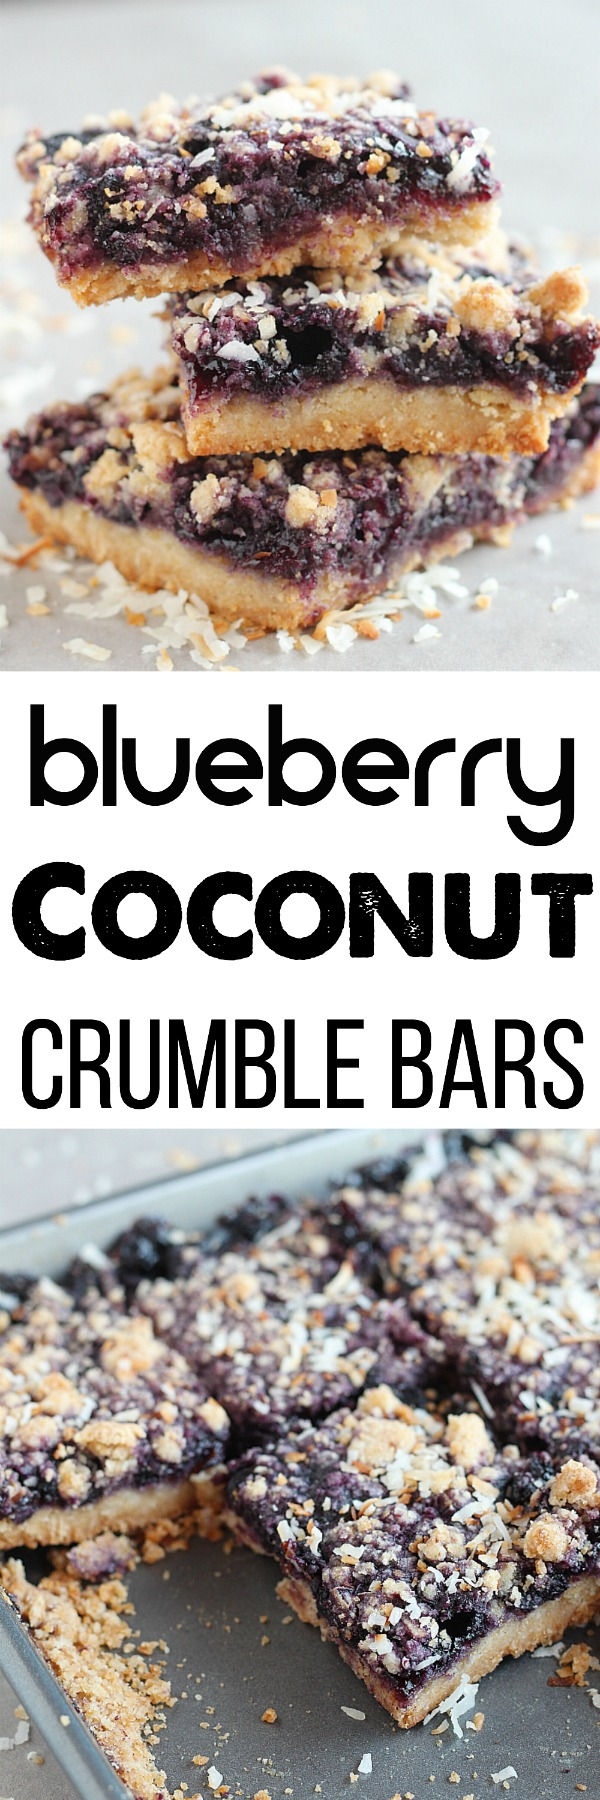 Blueberry & Coconut are the perfect combination for these crumble bars--perfect for summer berries! Top with ice cream when they're hot or enjoy as a snack on the go. YUM! via @DashOfEvans